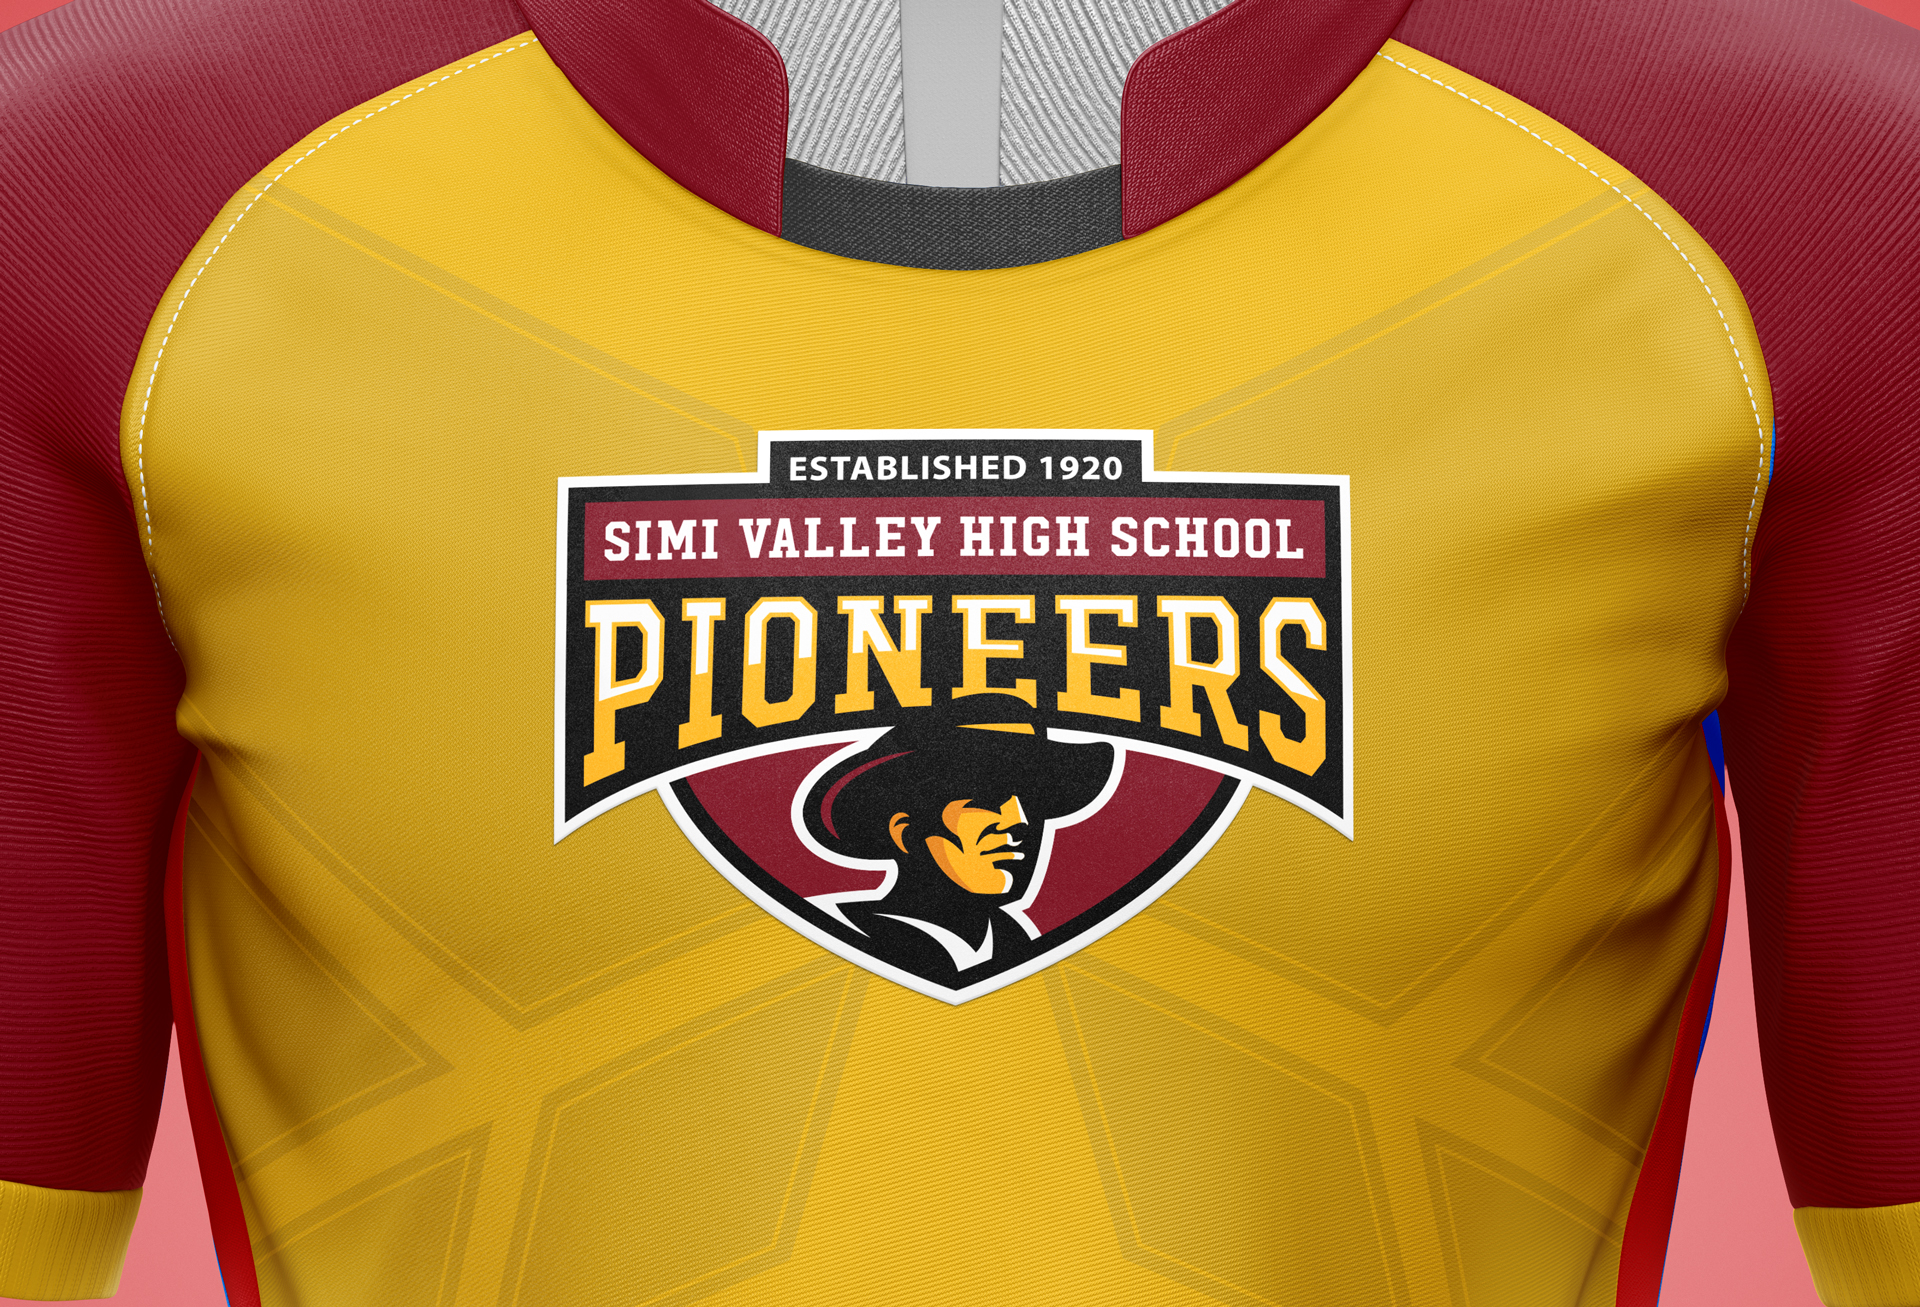 simi valley high school brand identity